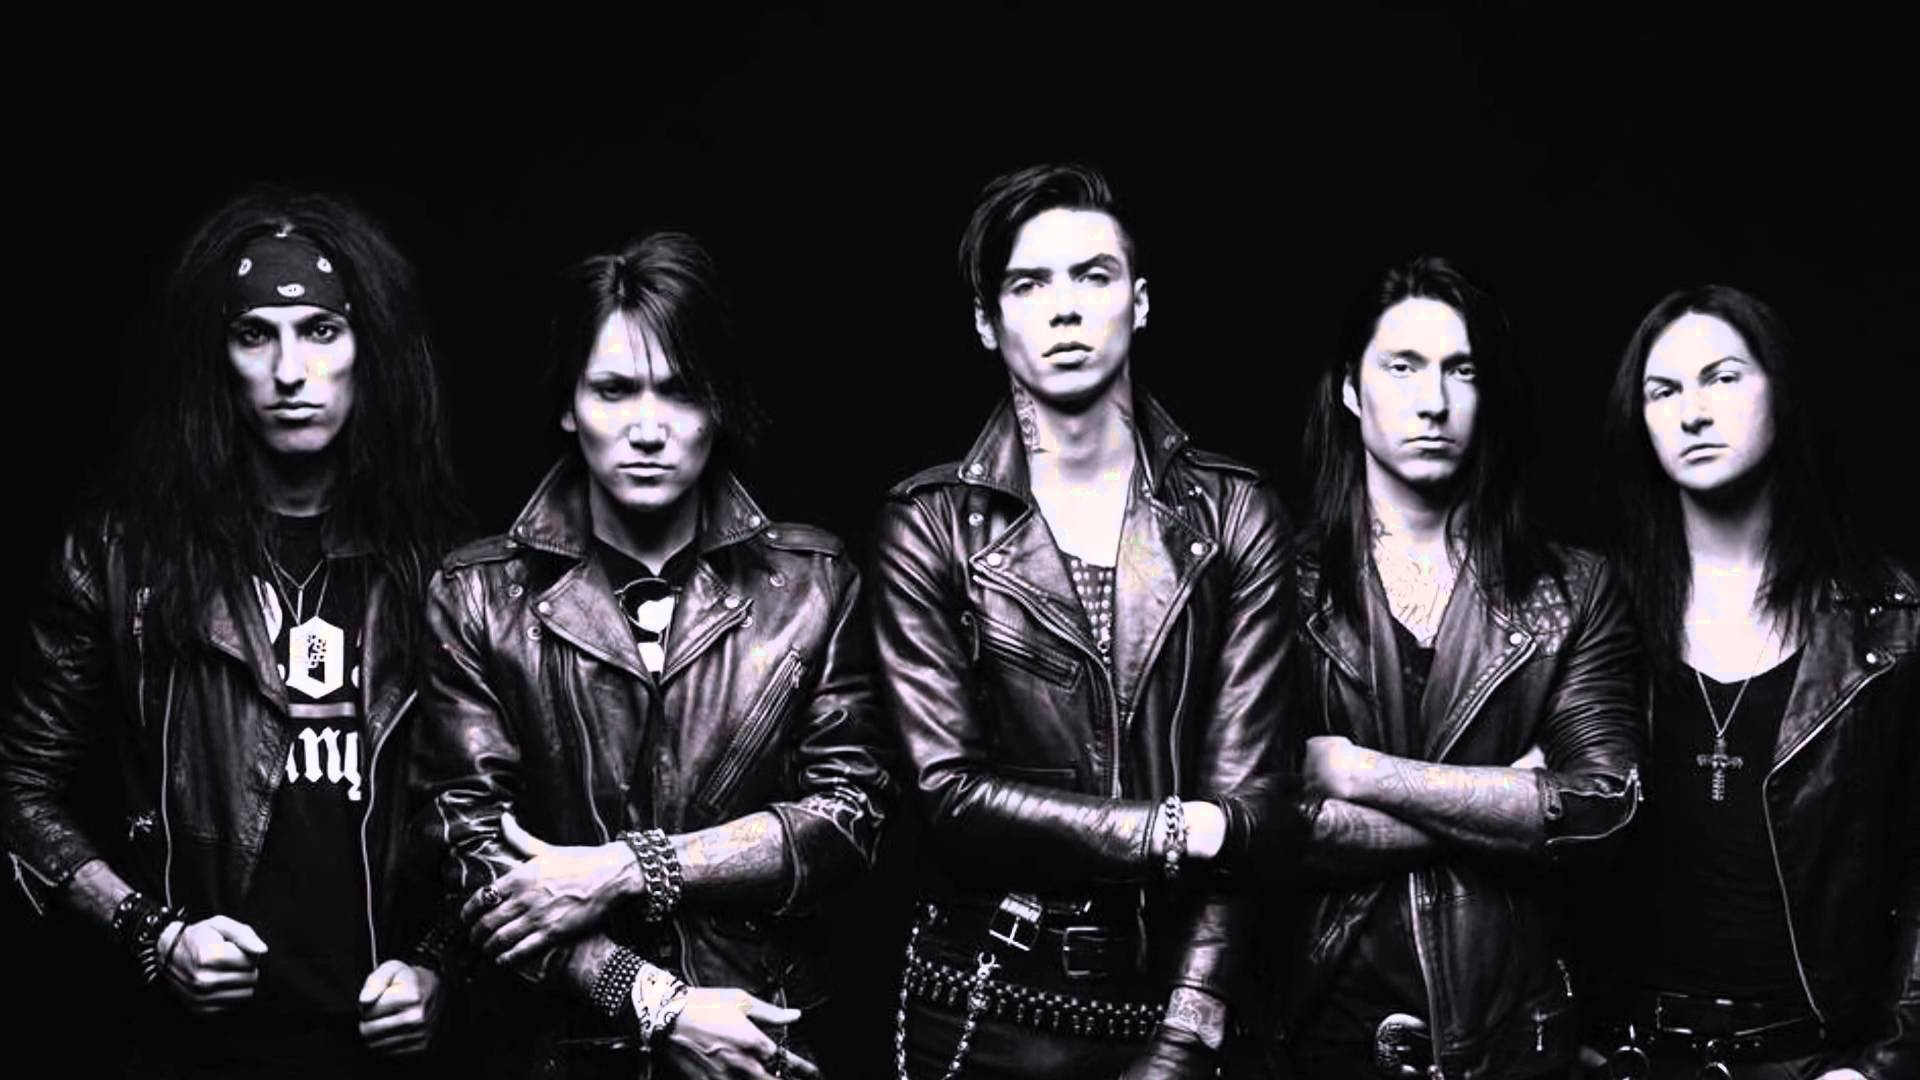 wallpaper.wiki-black-veil-brides-backgrounds-download-pic-wpe0011633